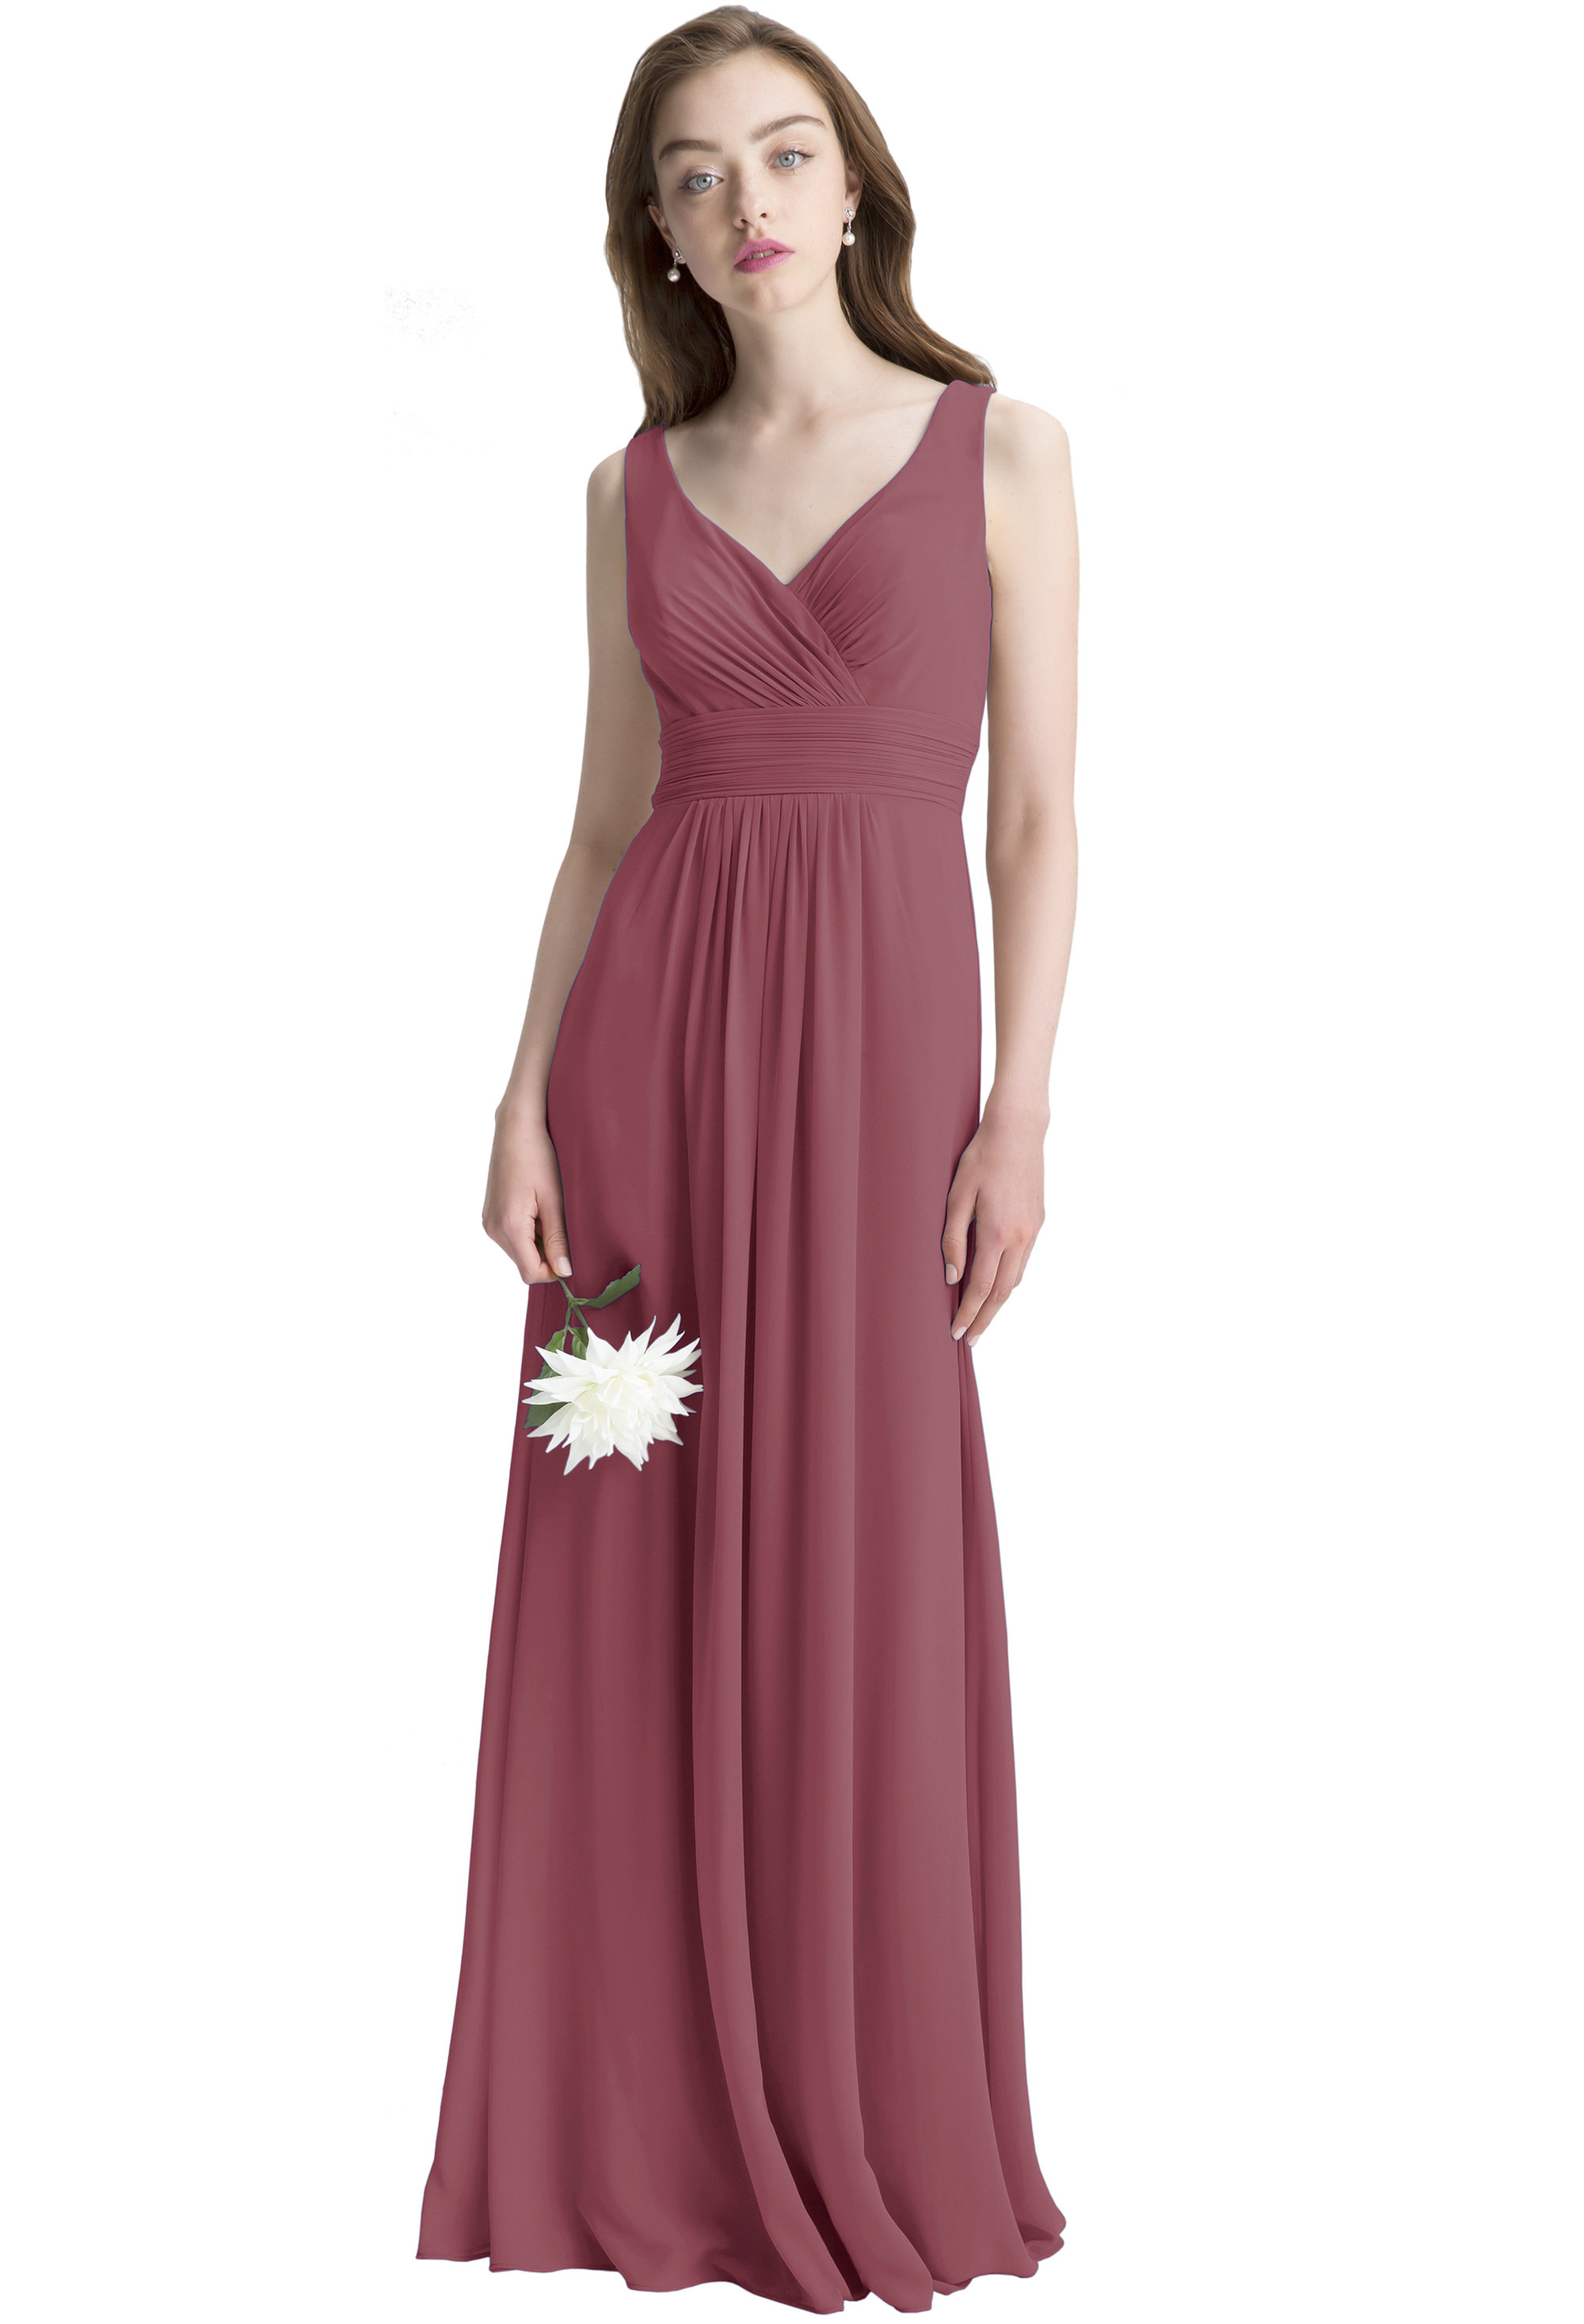 Bill Levkoff Rosewood Chiffon Surplice A-line gown, $150.00 Front